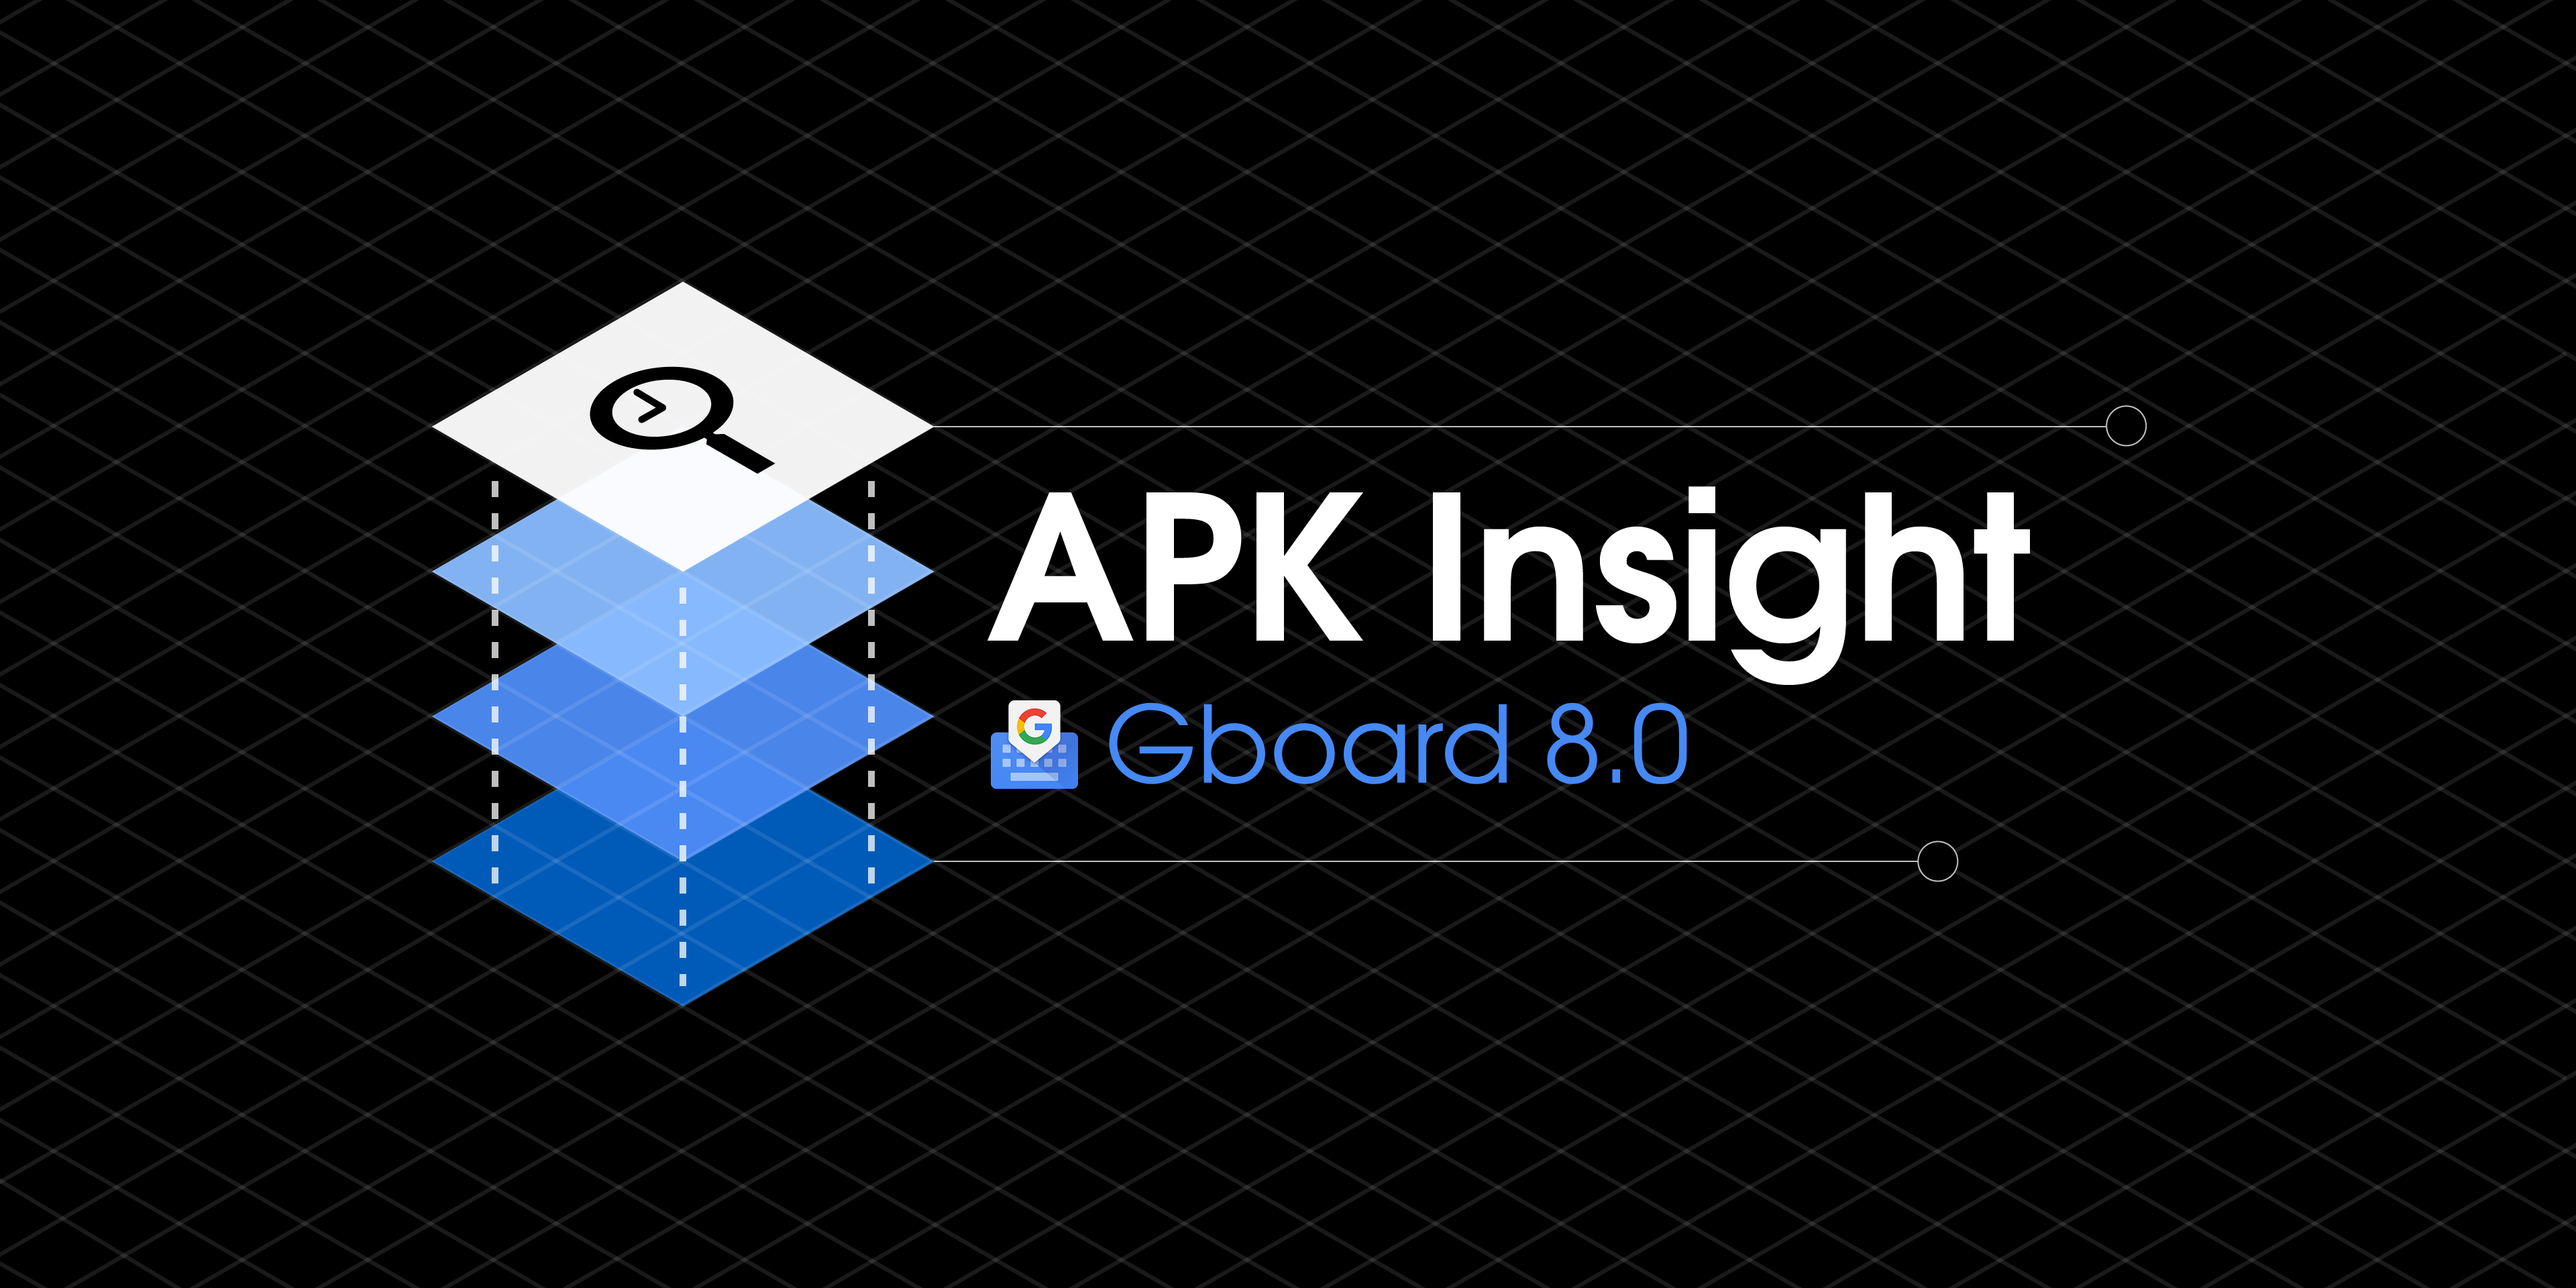 Update: Sharing languages] Gboard 8 0 preps Clipboard & Material